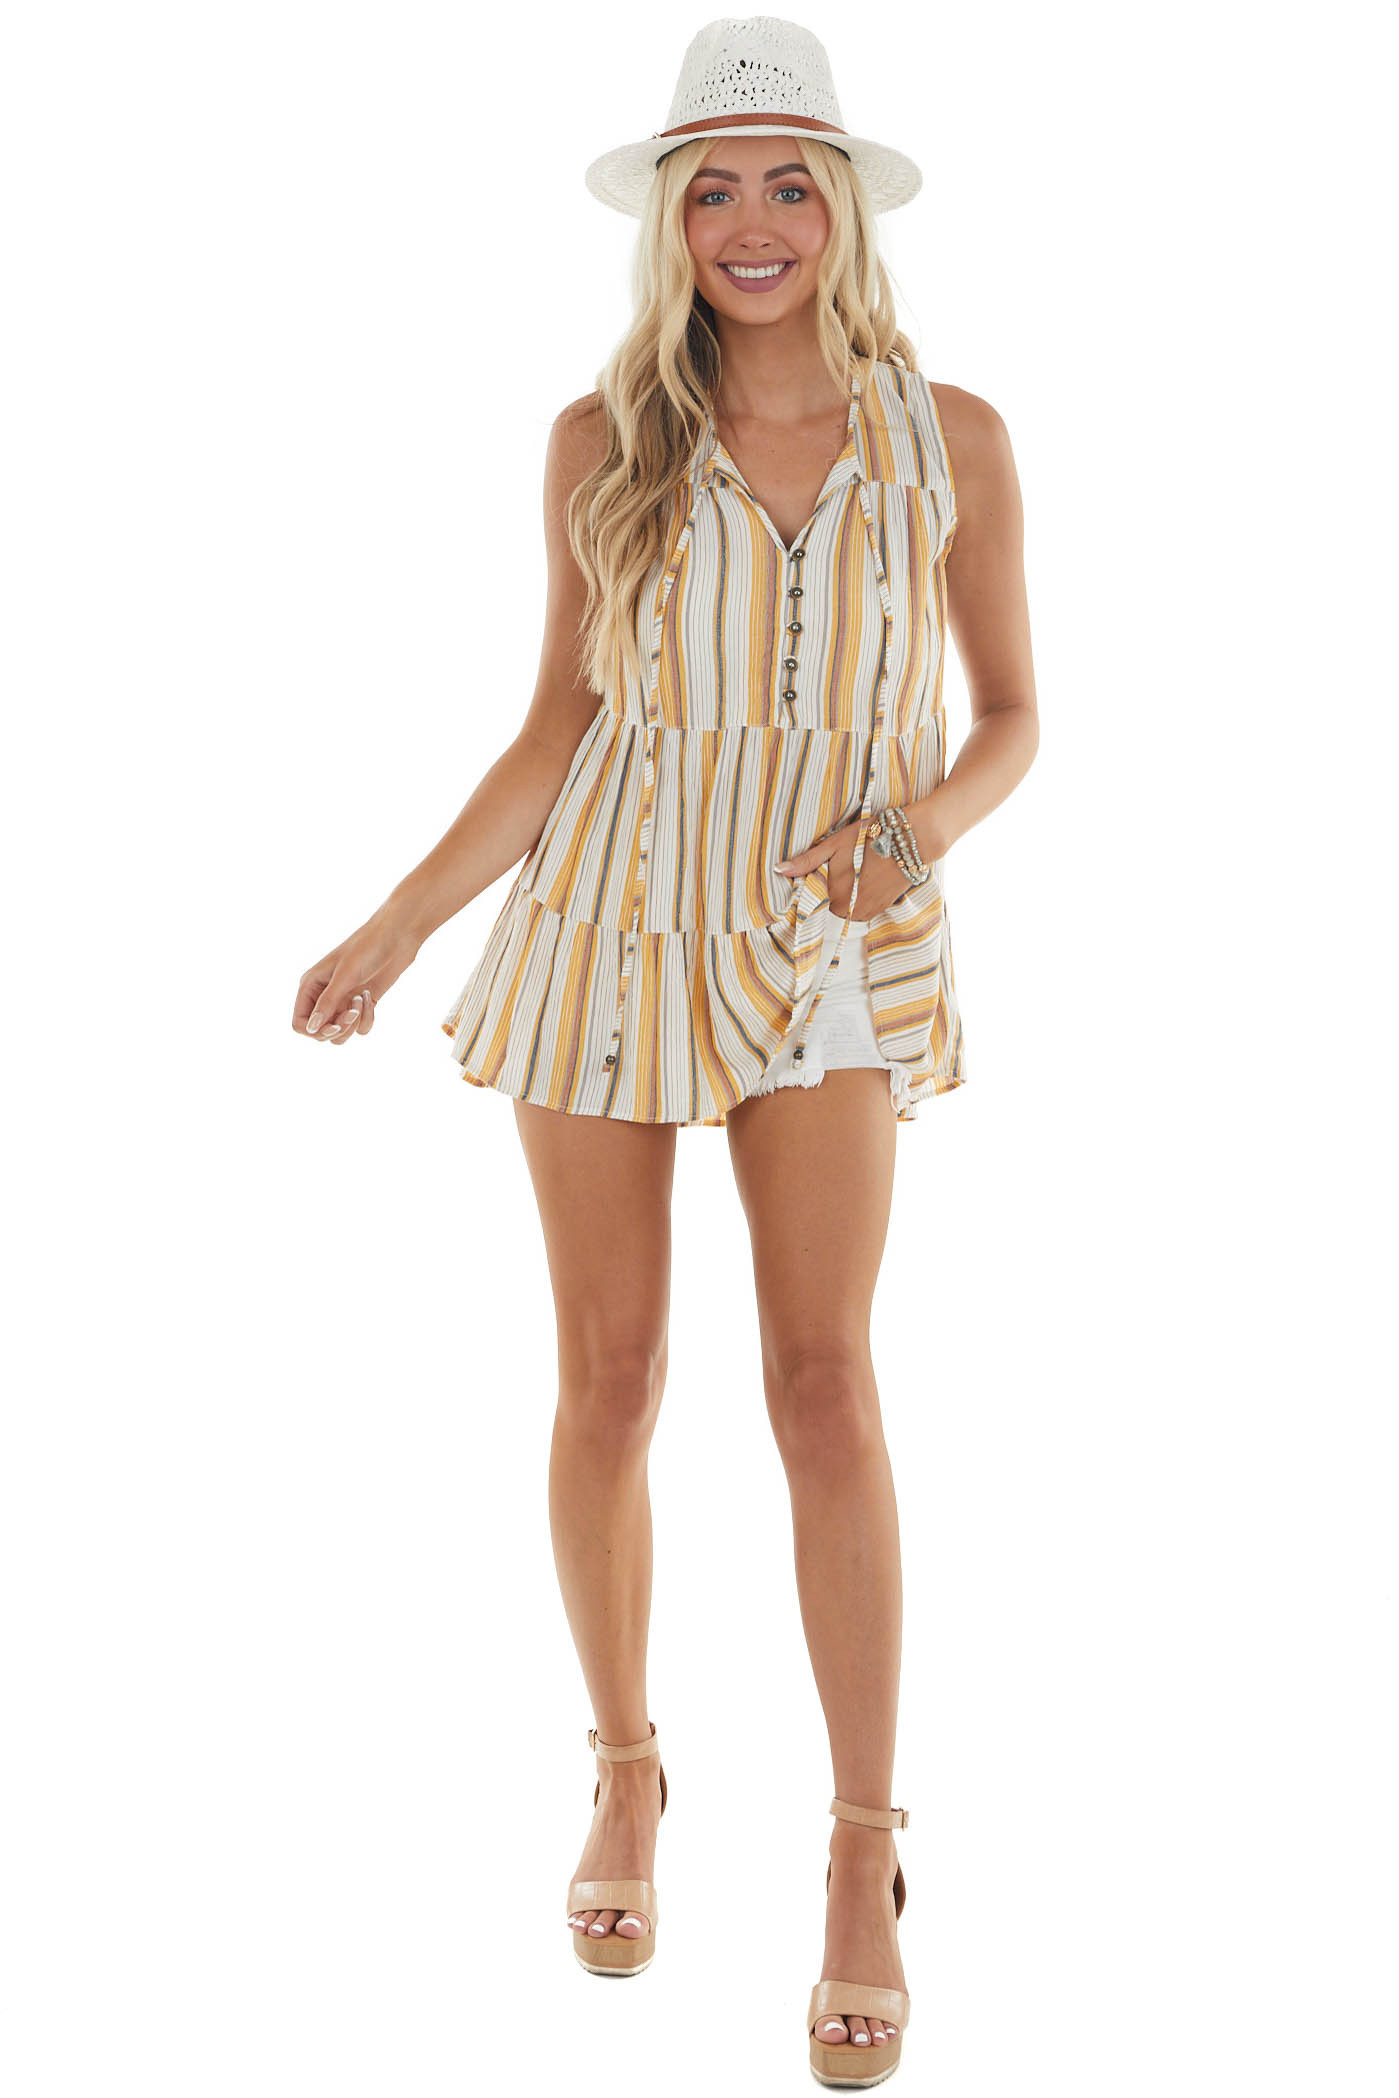 Amber Striped Print Tank Top with Buttons